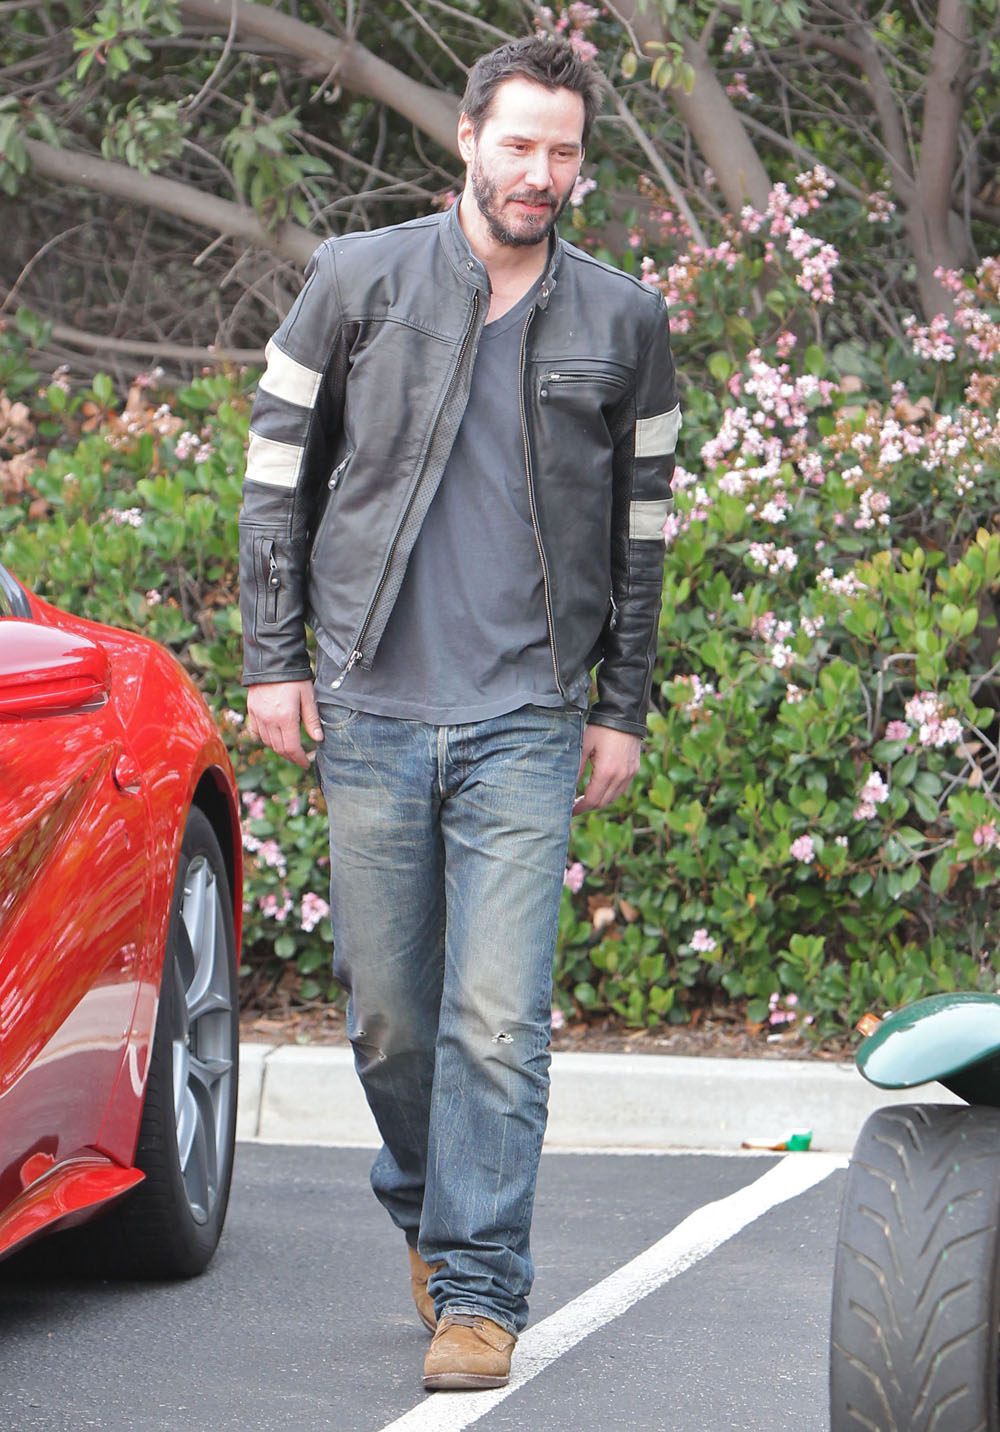 Cele|bitchy | Keanu Reeves proudly shows his custom $78k motorcycles at classic car event